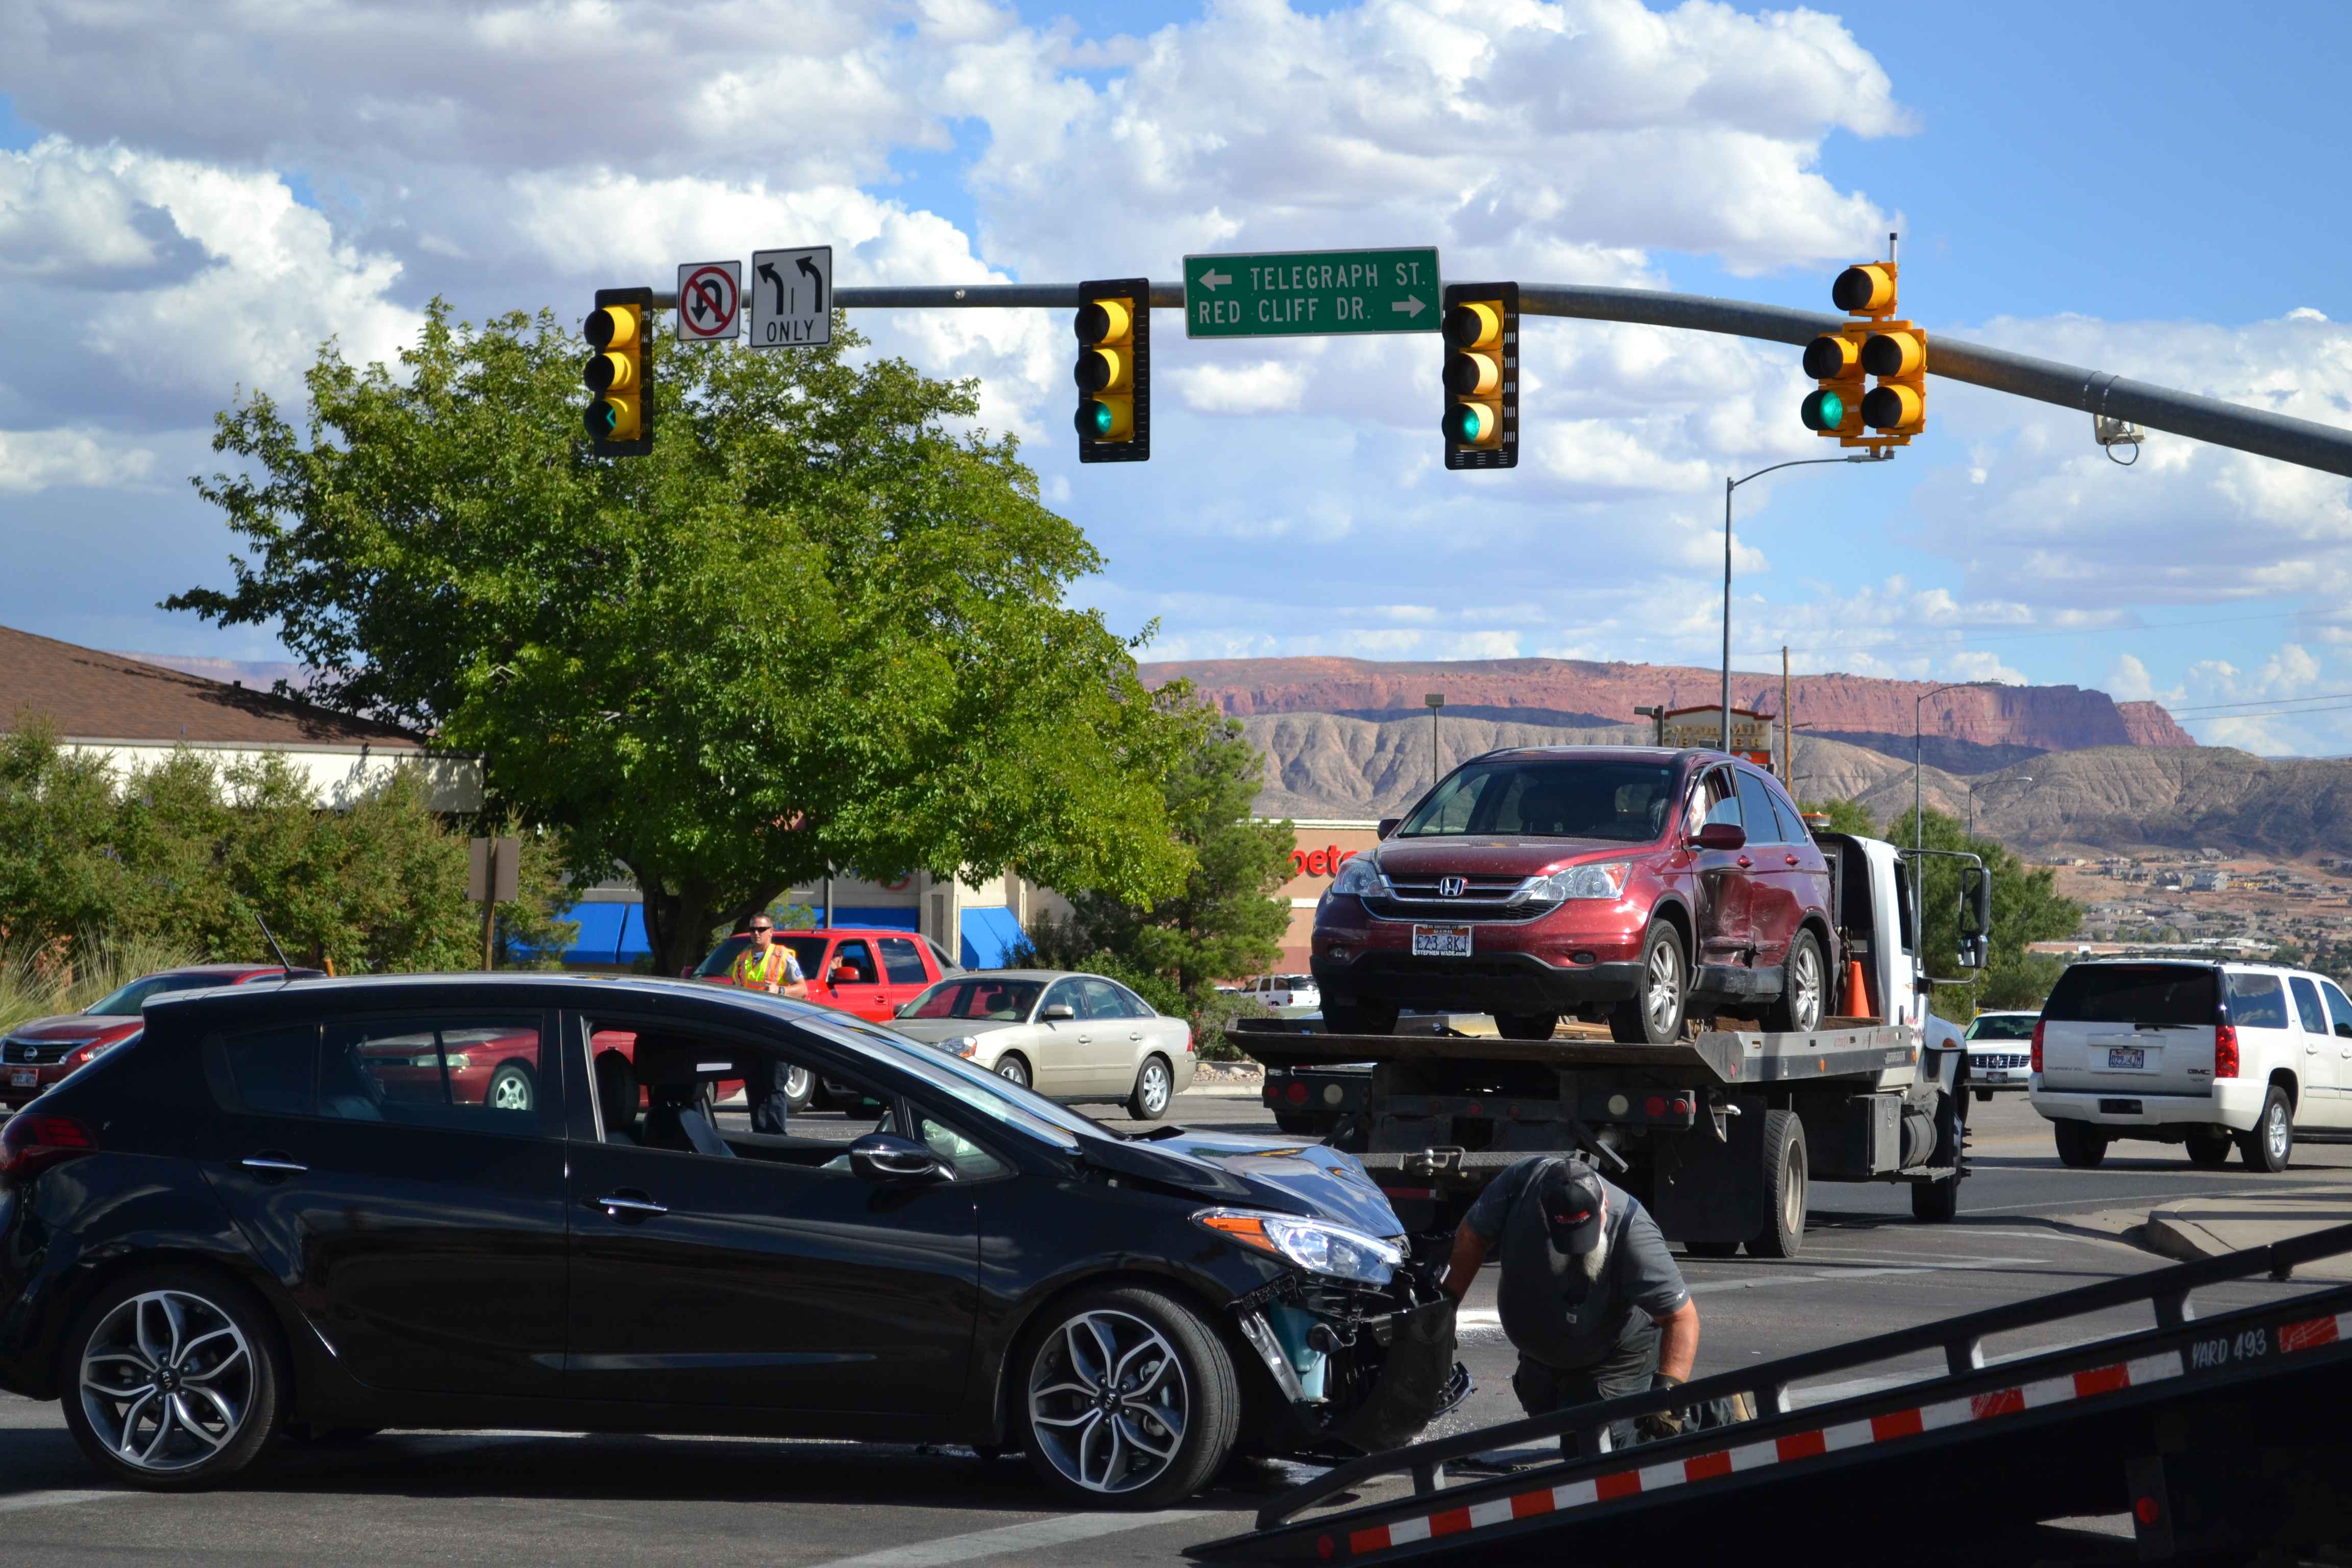 A man was transported to the hospital after a collision at the intersection of West Telegraph Street and South Green Springs Drive, Washington City, Utah, Oct. 1, 2016 | Photo by Joseph Witham, St. George News